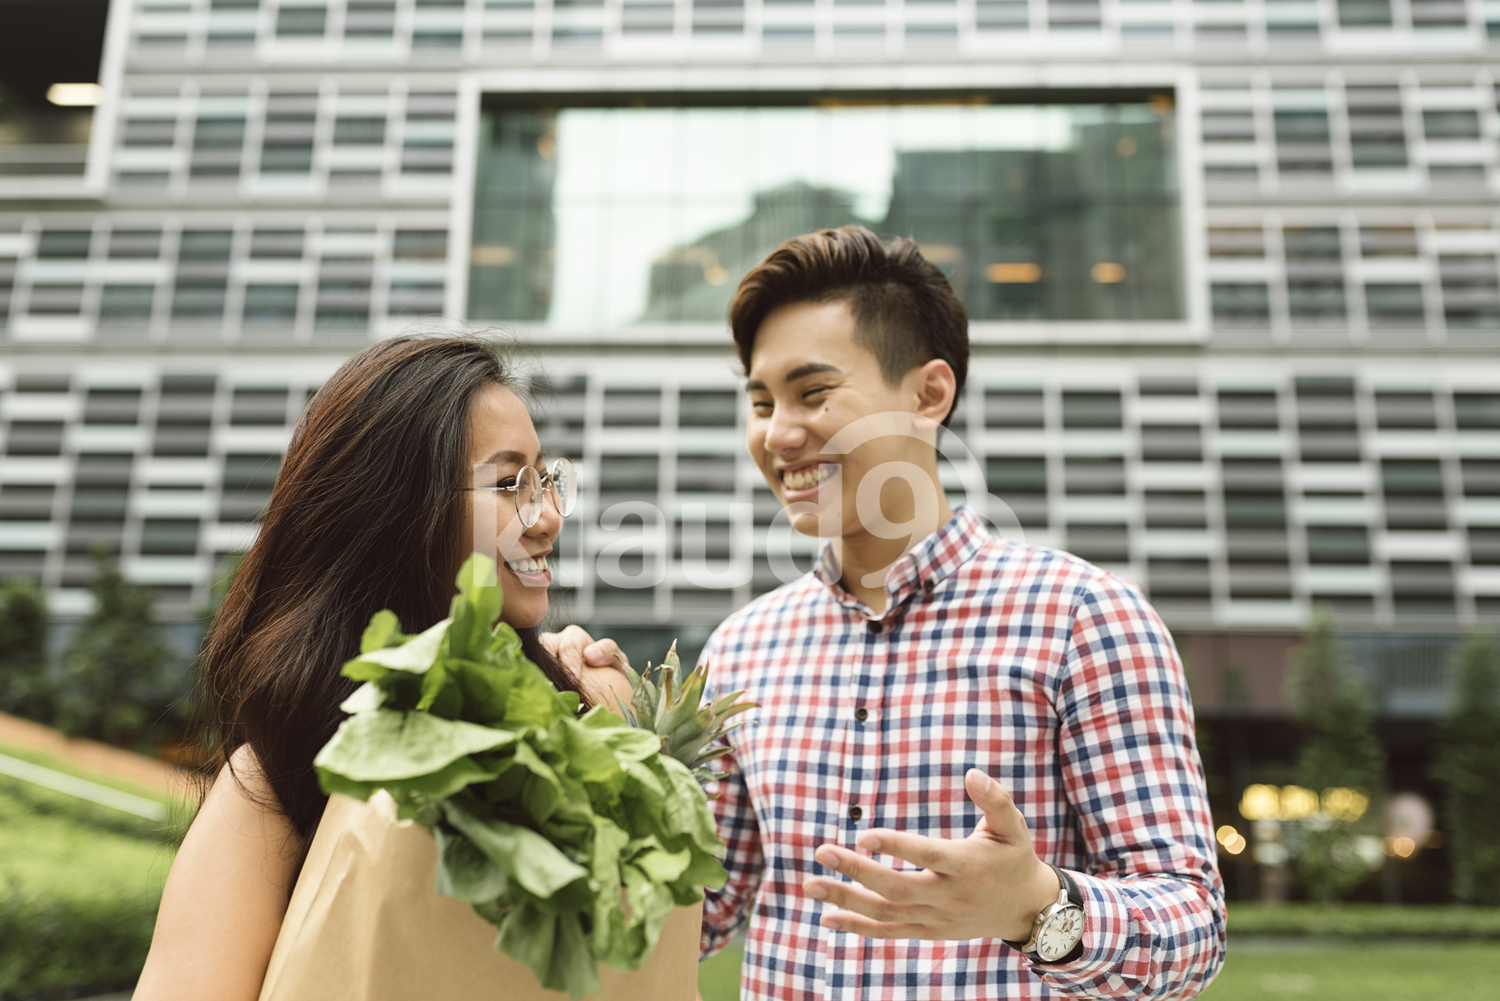 Chinese couple at the city with grocery bag